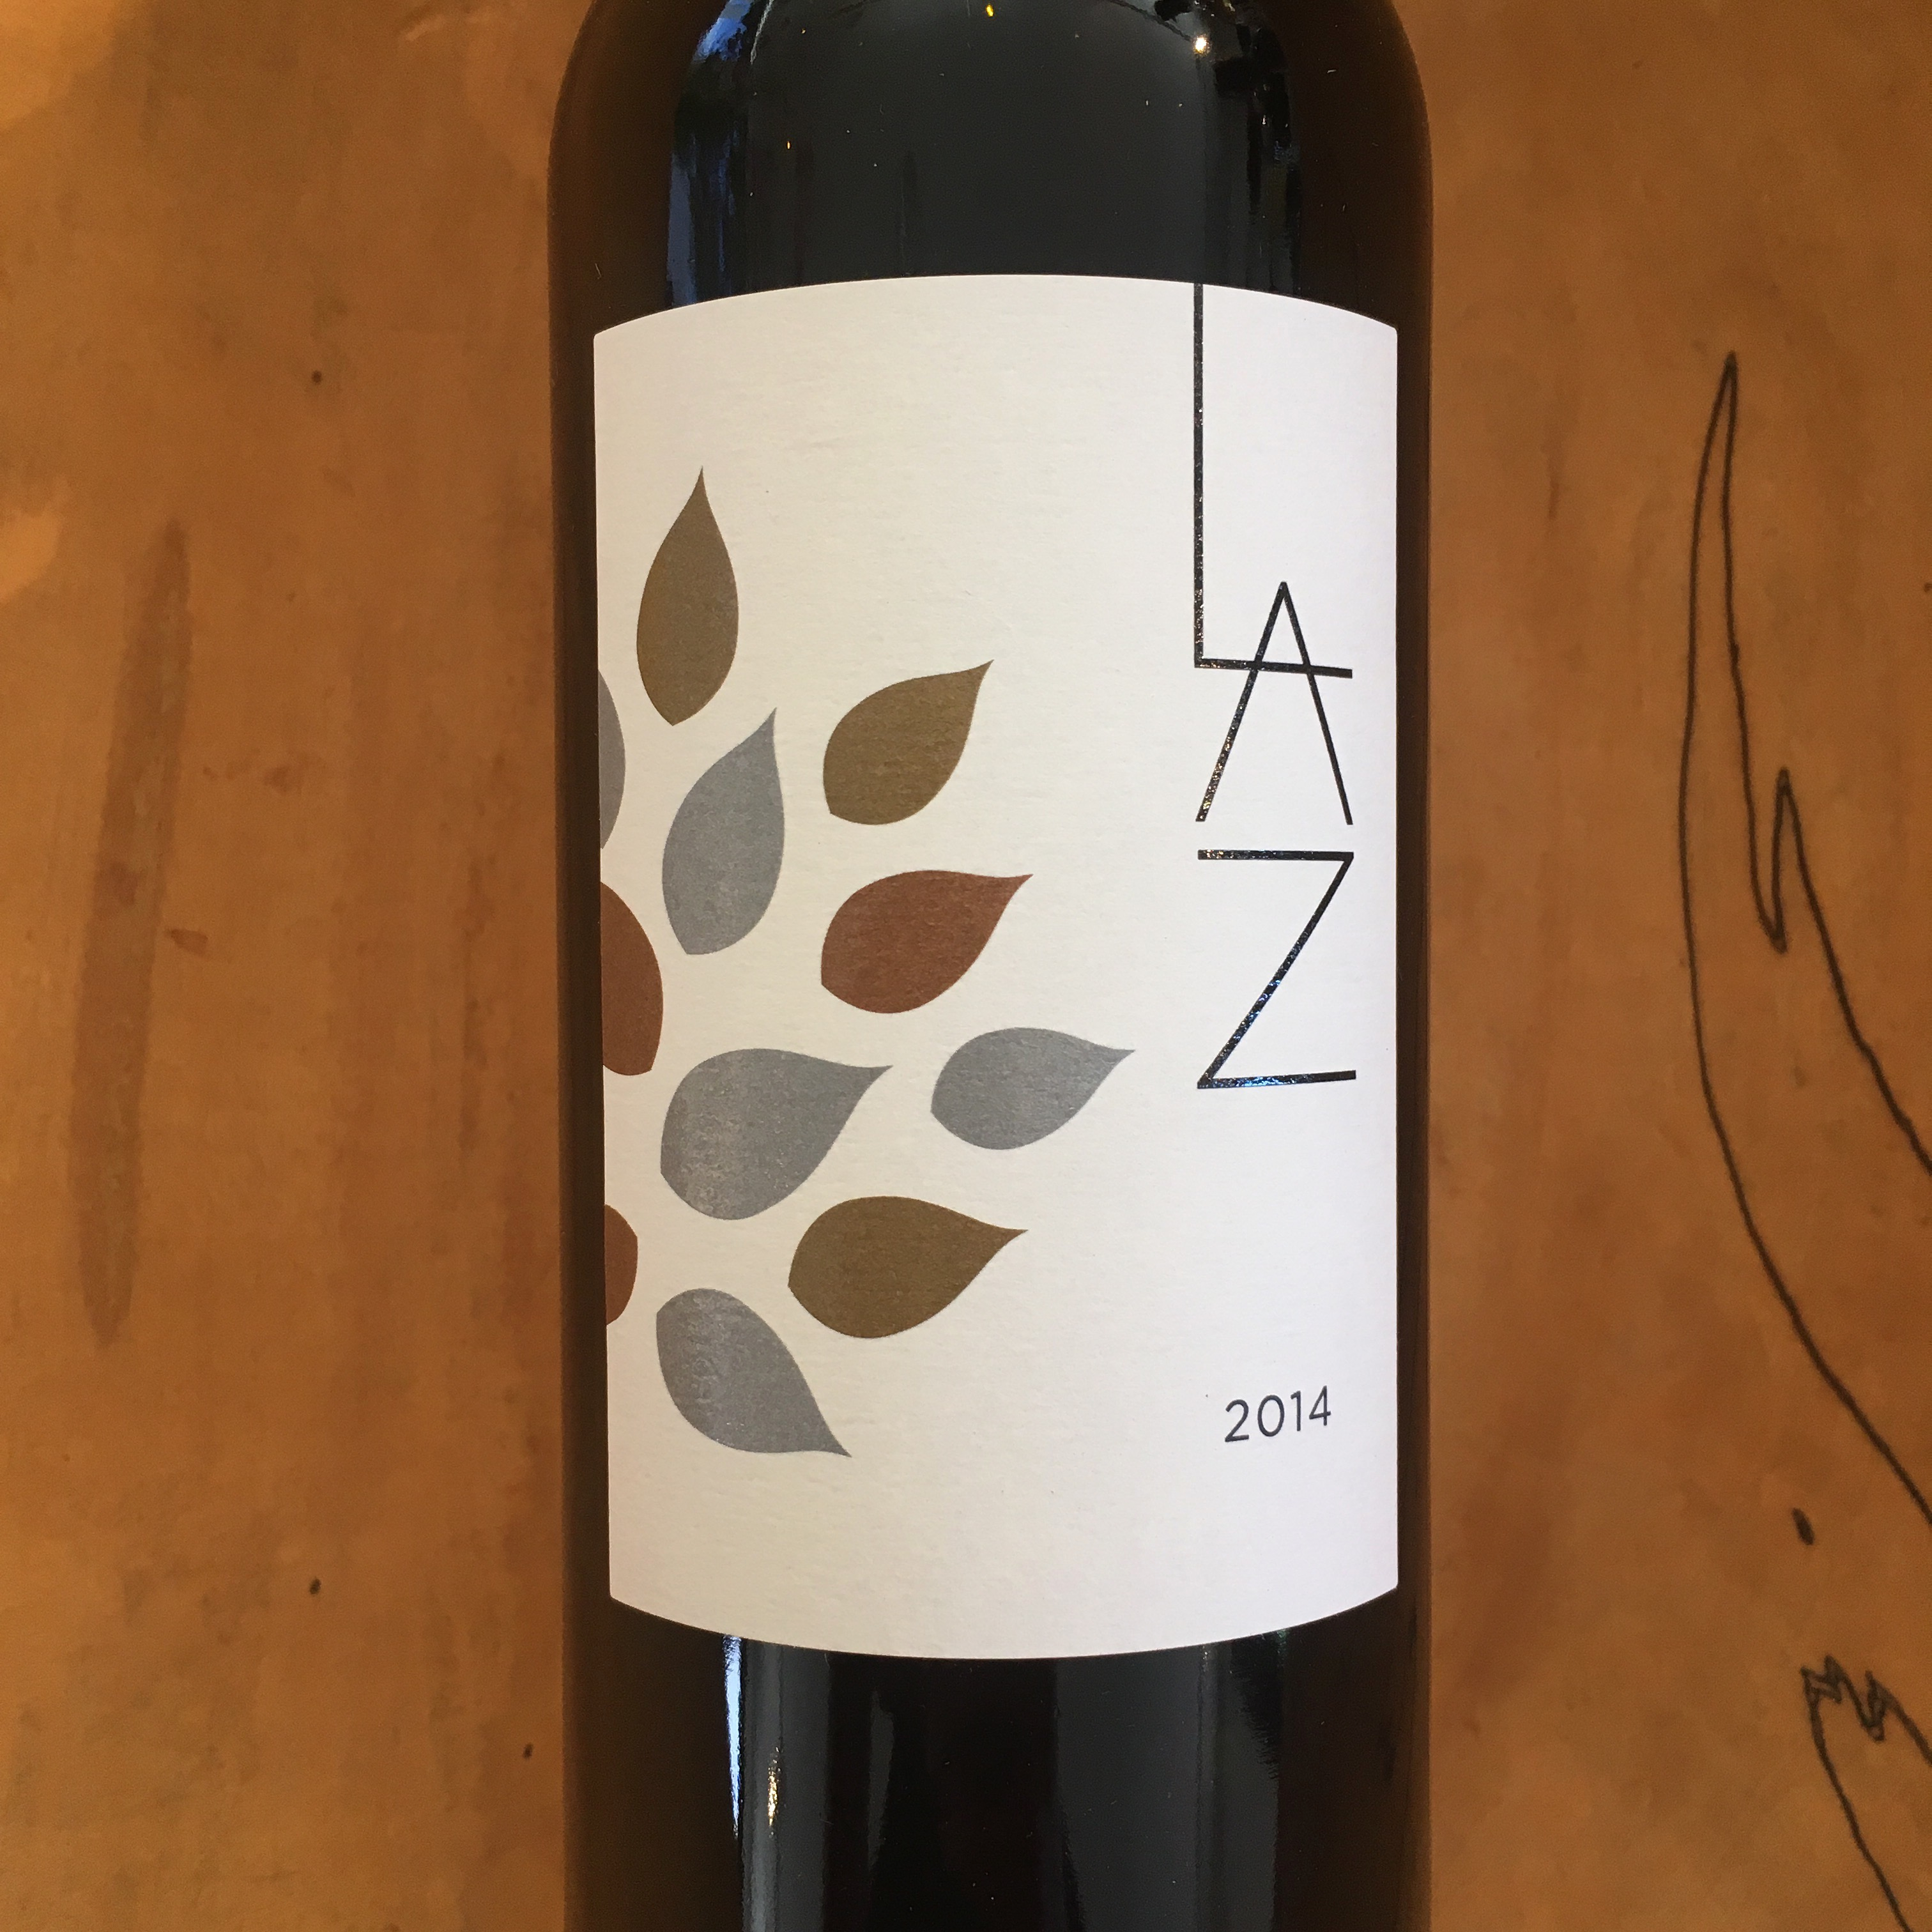 LAZ Cabernet Sauvignon 2014 Napa Valley - K. Laz Wine Collection